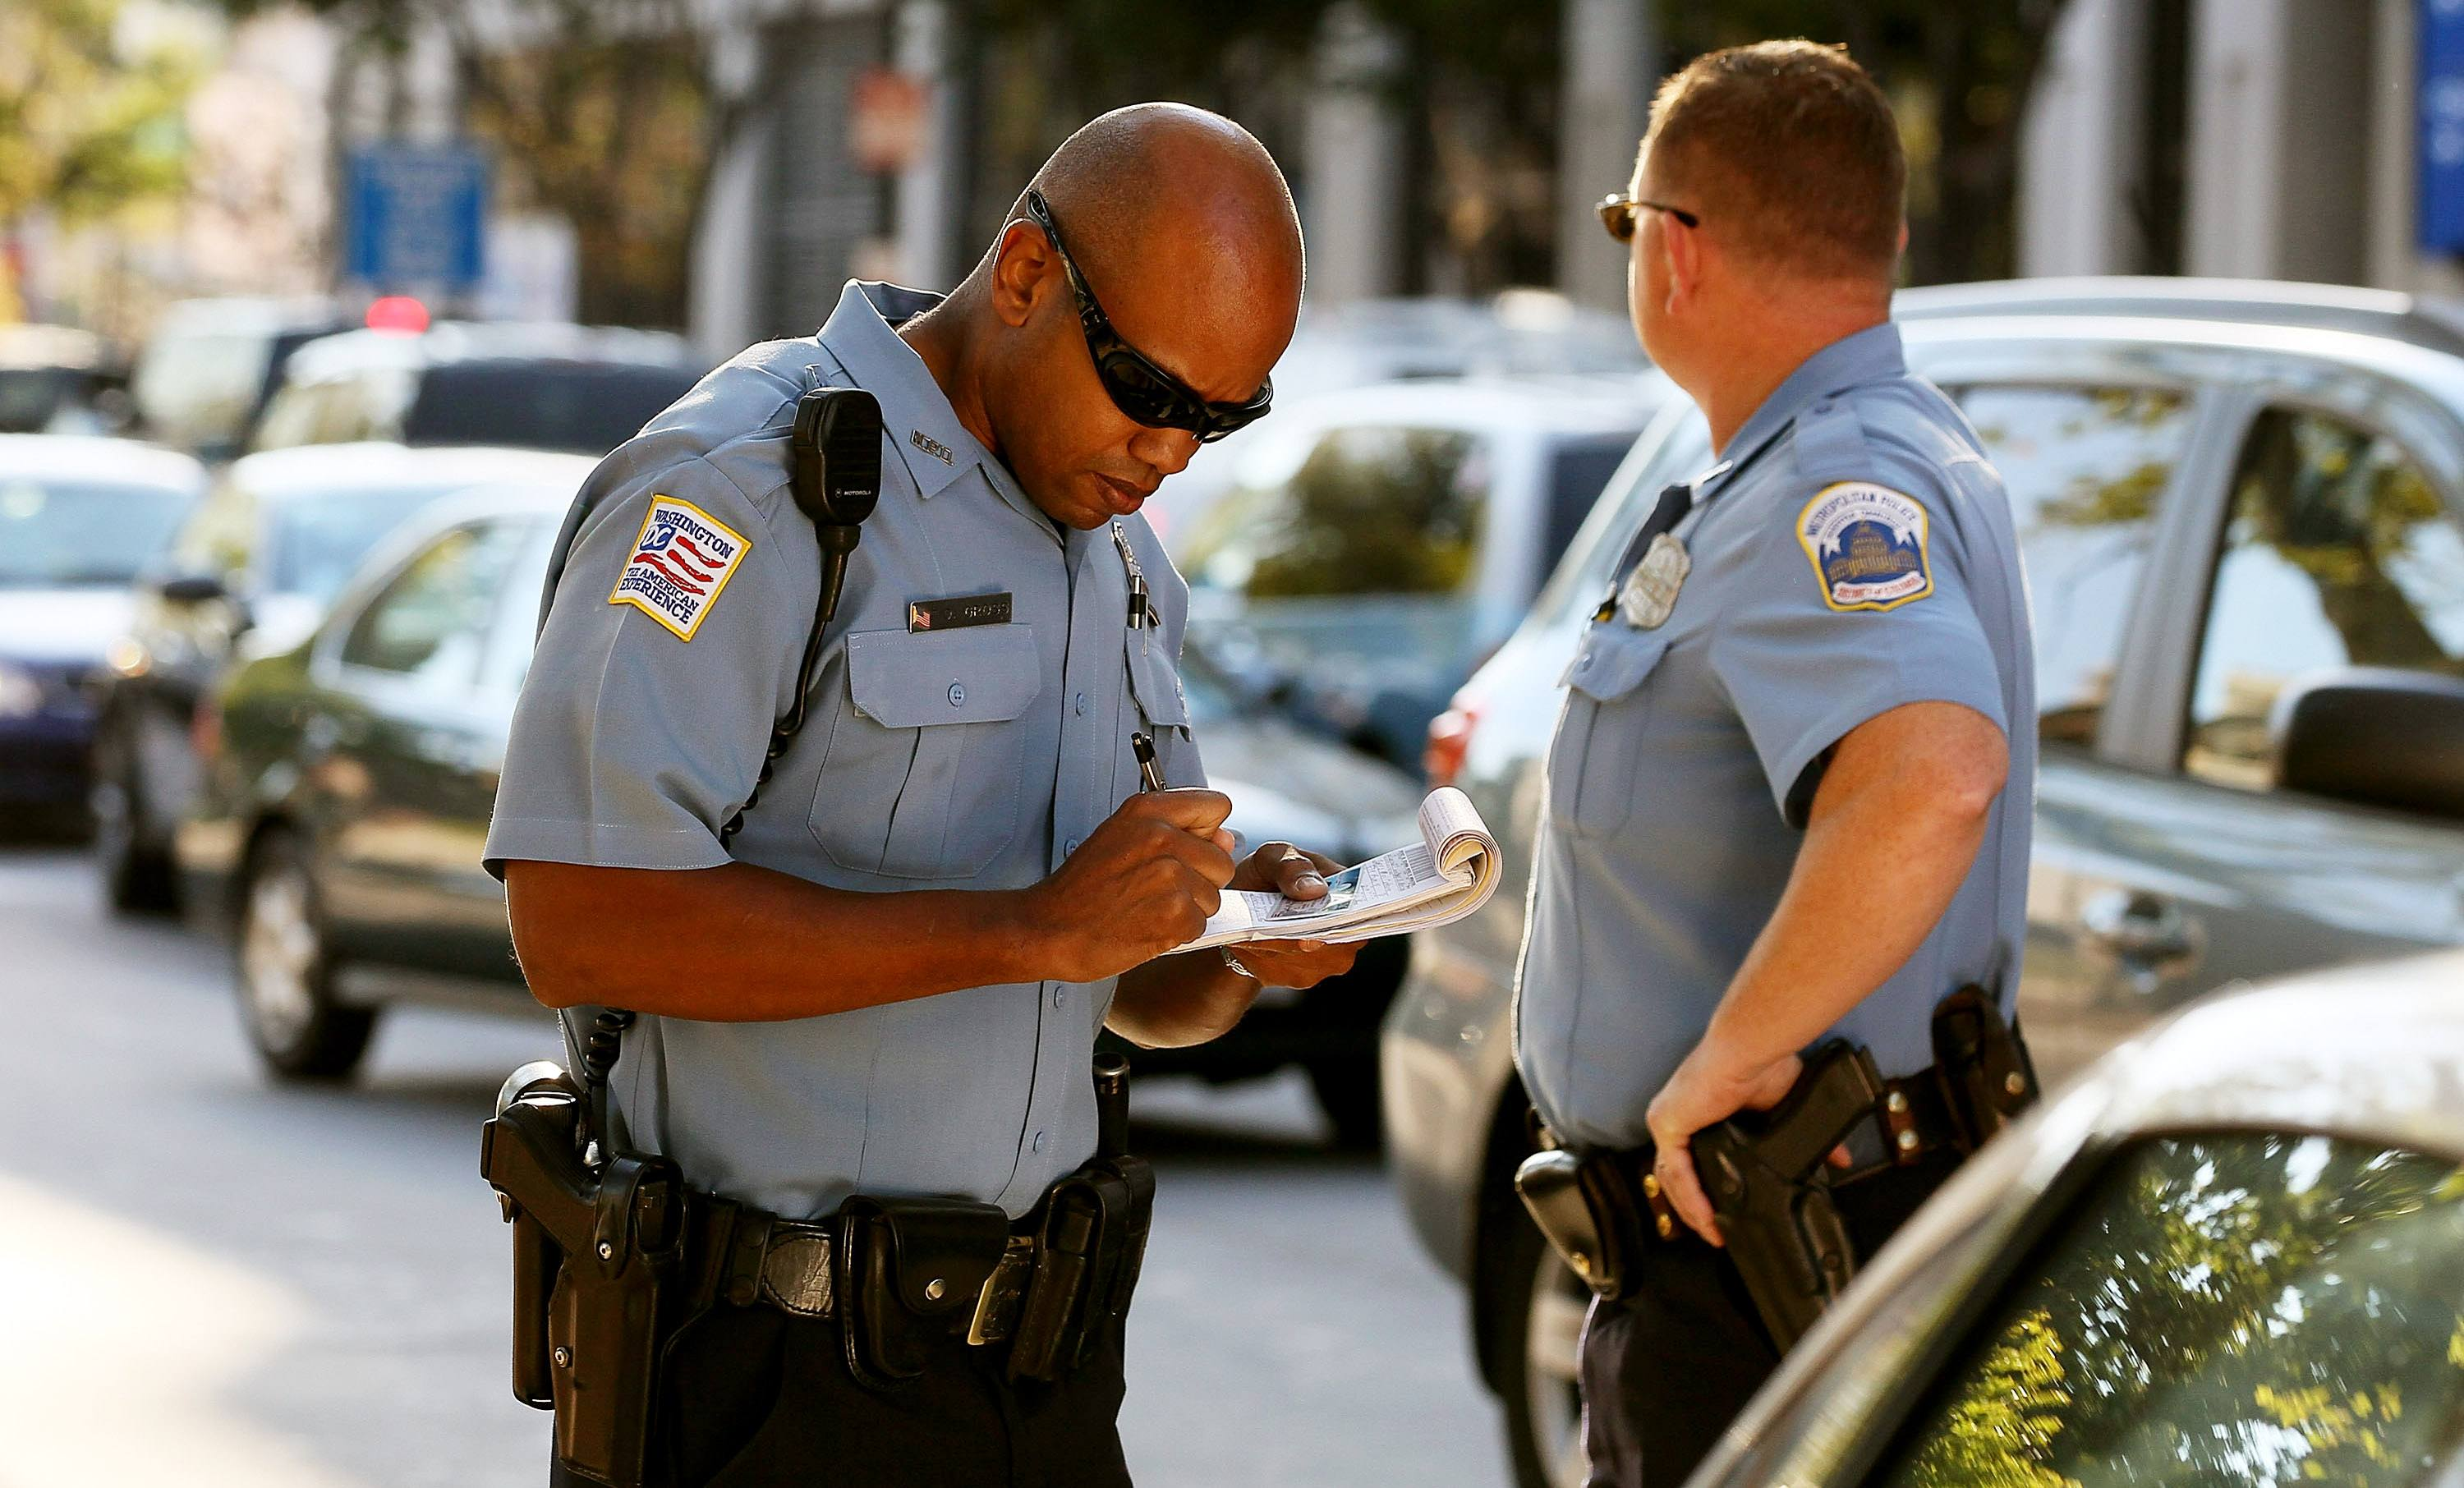 police officers writing ticket